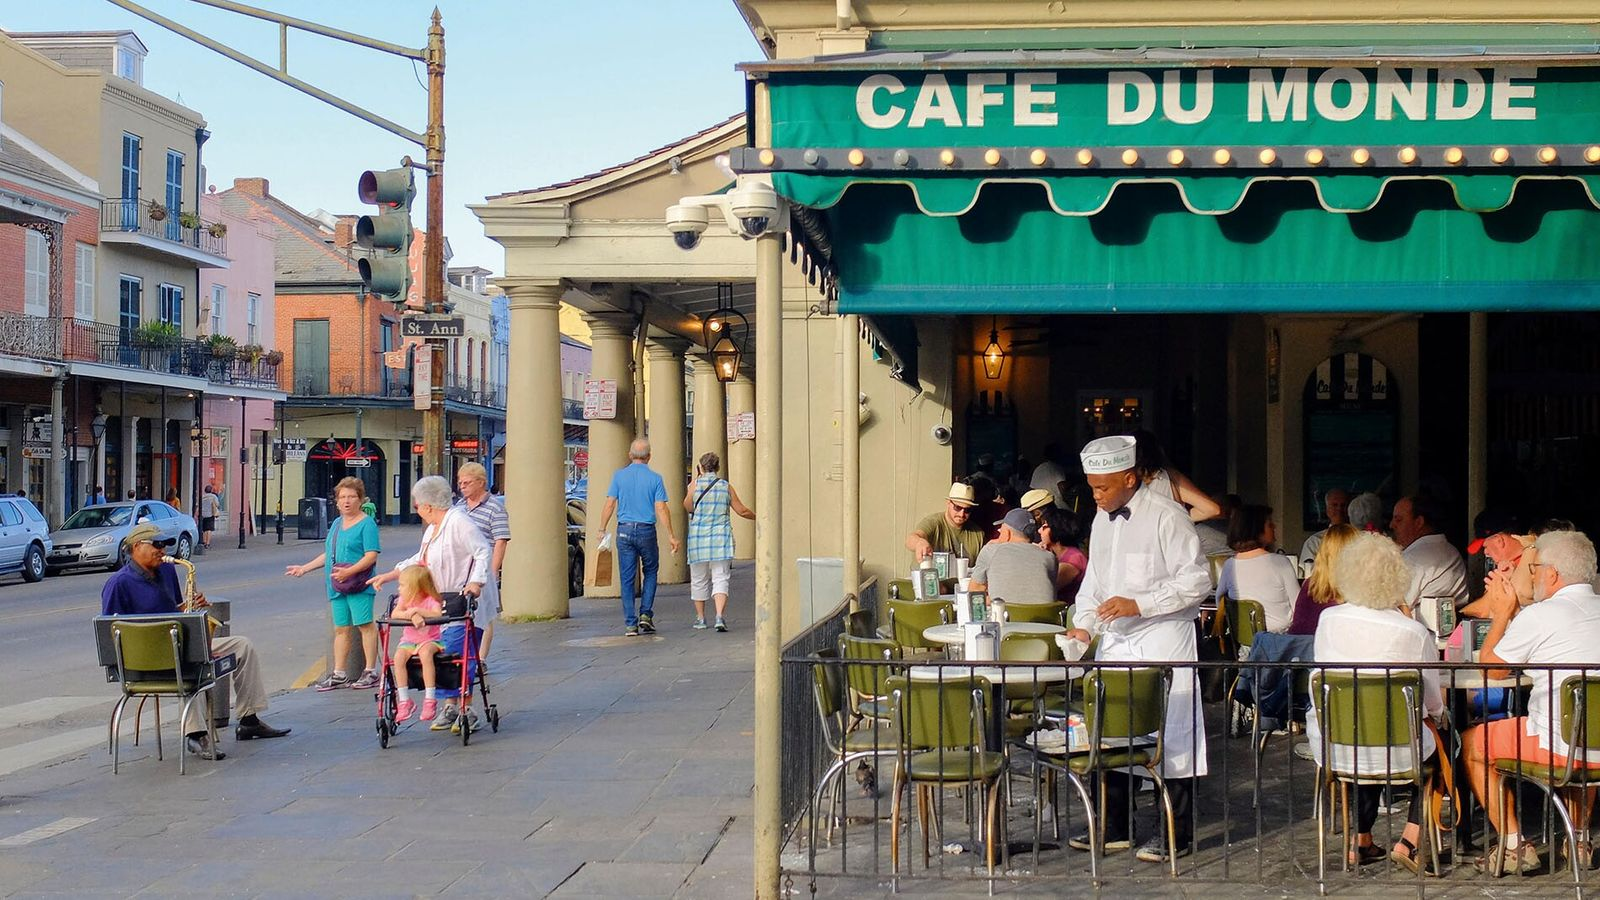 New Orlean's Cafe du Monde is renowned for its chicory coffee and beignets.